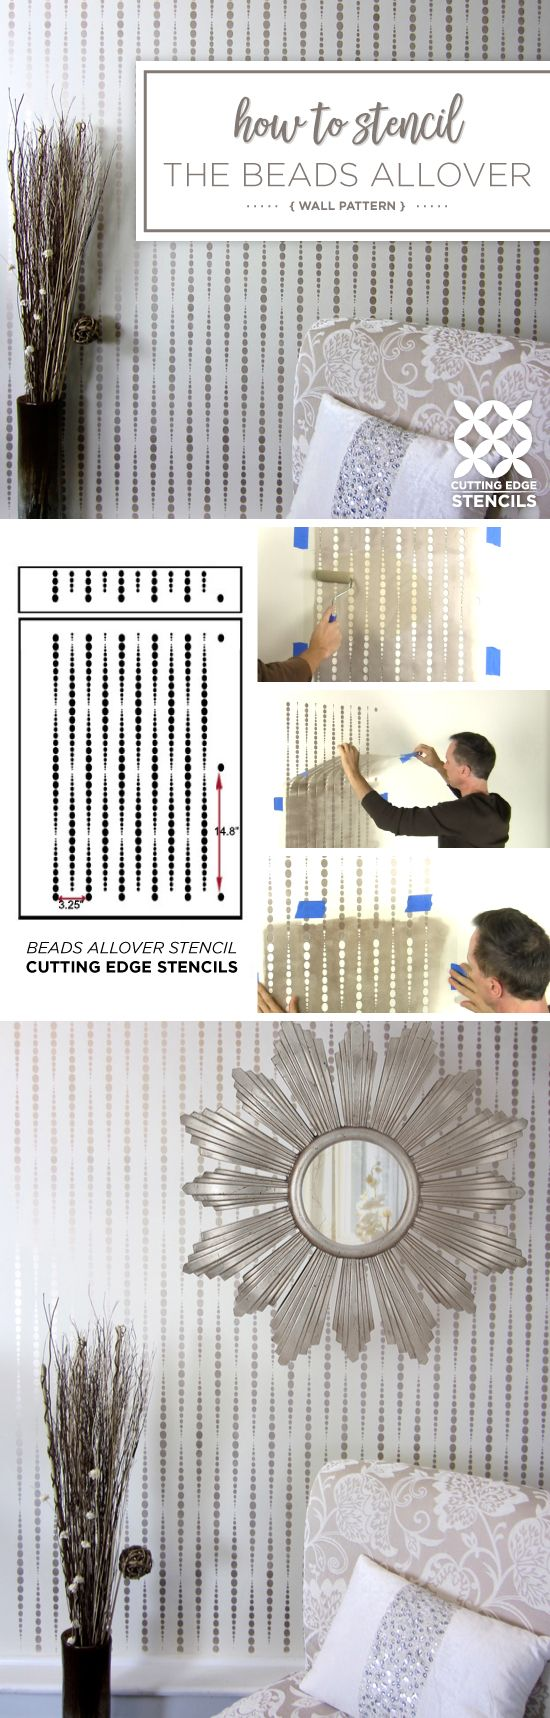 Cutting Edge Stencils shares a stencil tutorial showing how to paint an accent wall using a geometric wallpaper pattern, the Beads Allover Stencil.  http://www.cuttingedgestencils.com/beads-wall-stencil-pattern.html